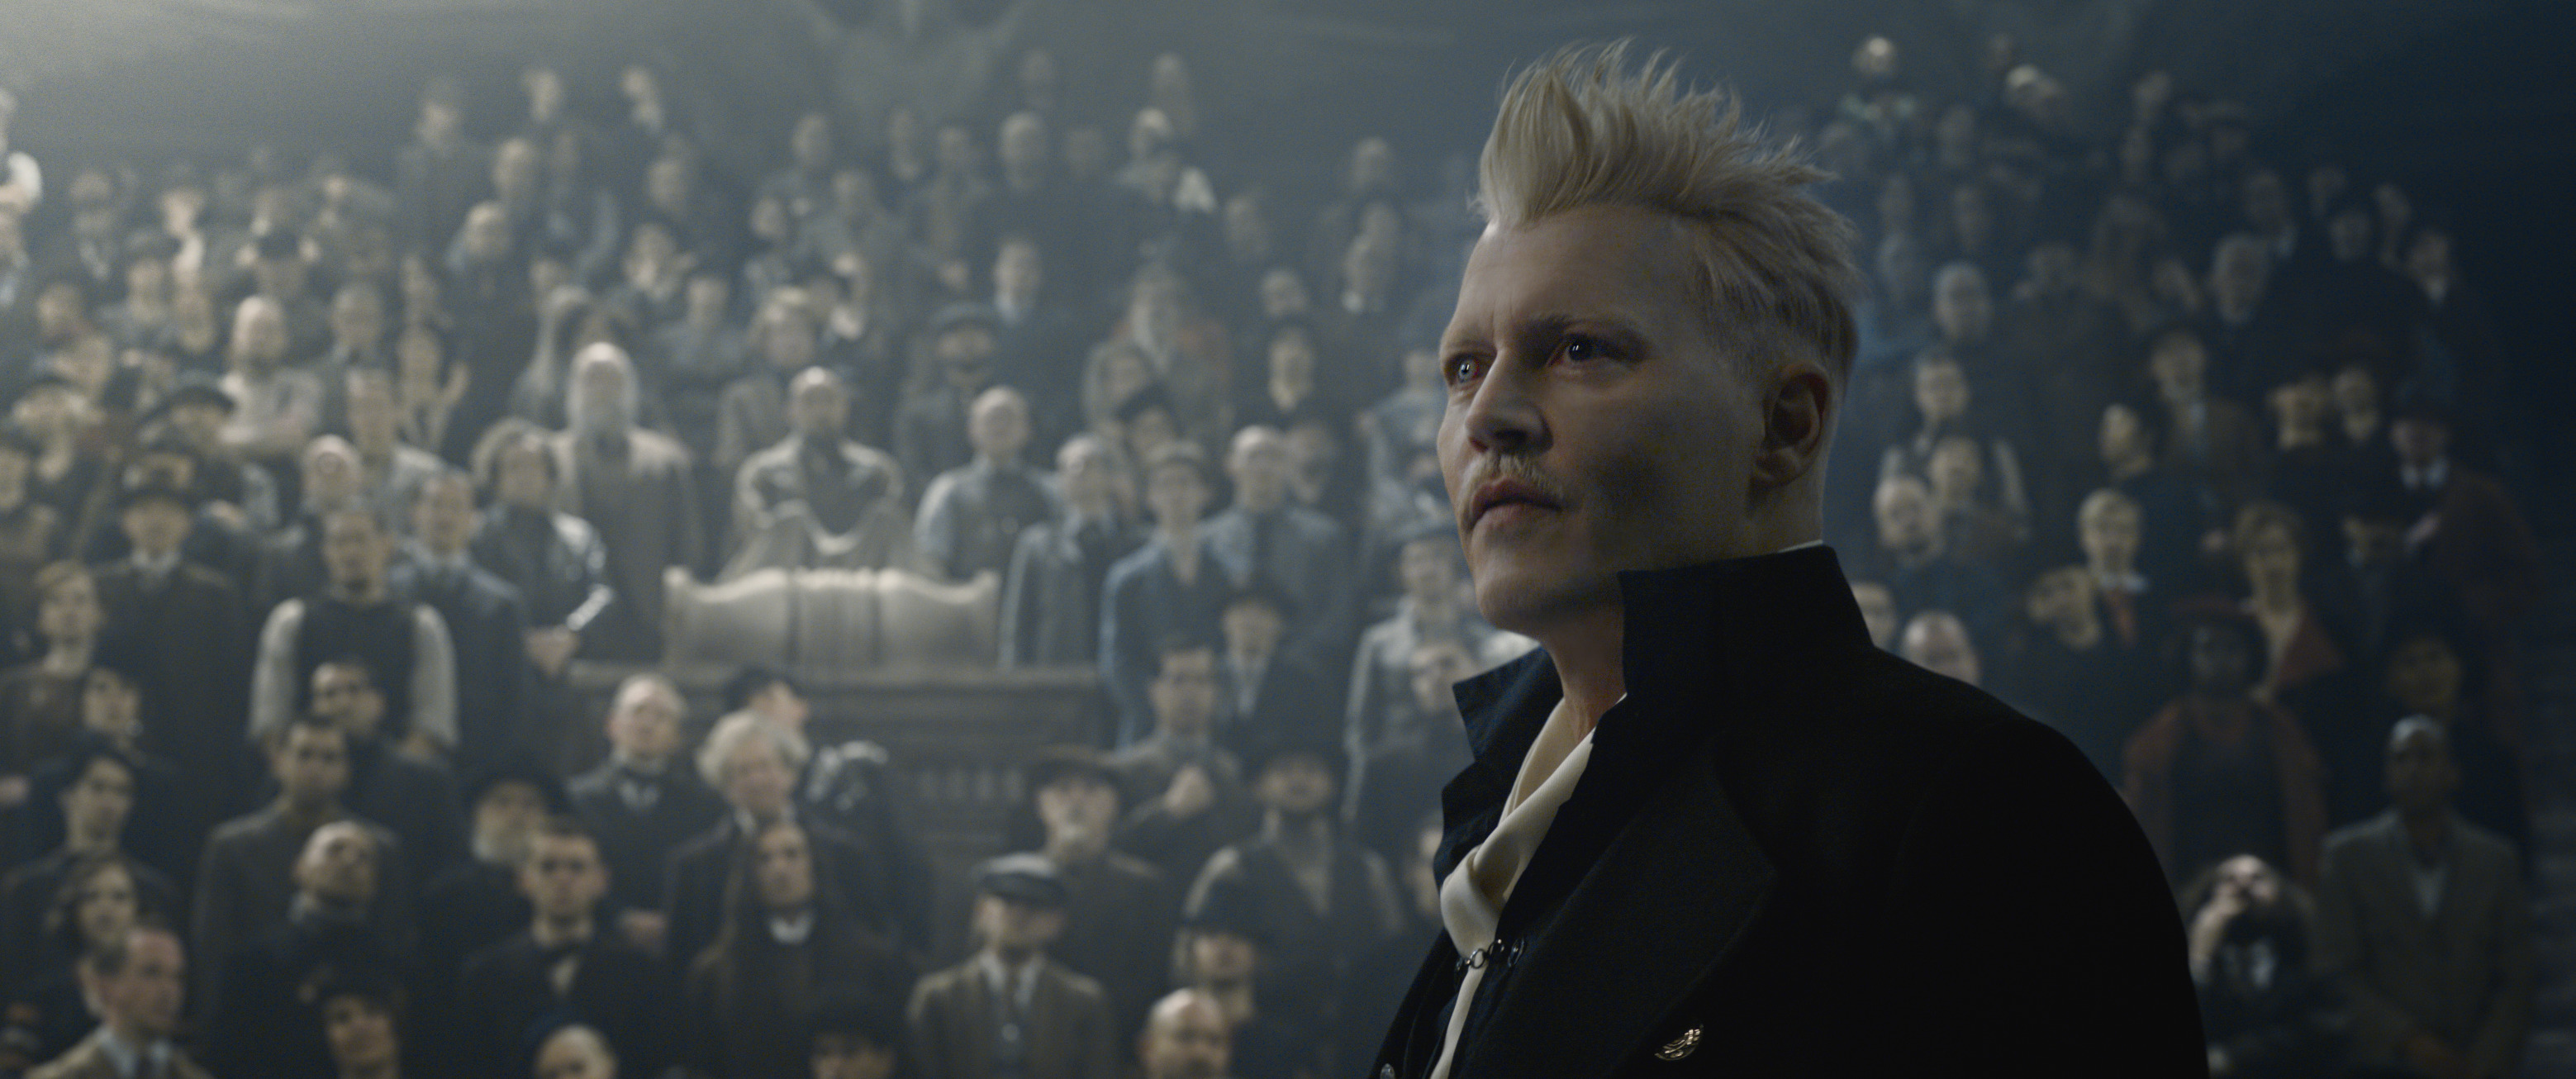 Johnny Depp in Fantastic Beasts: The Crimes of Grindelwald